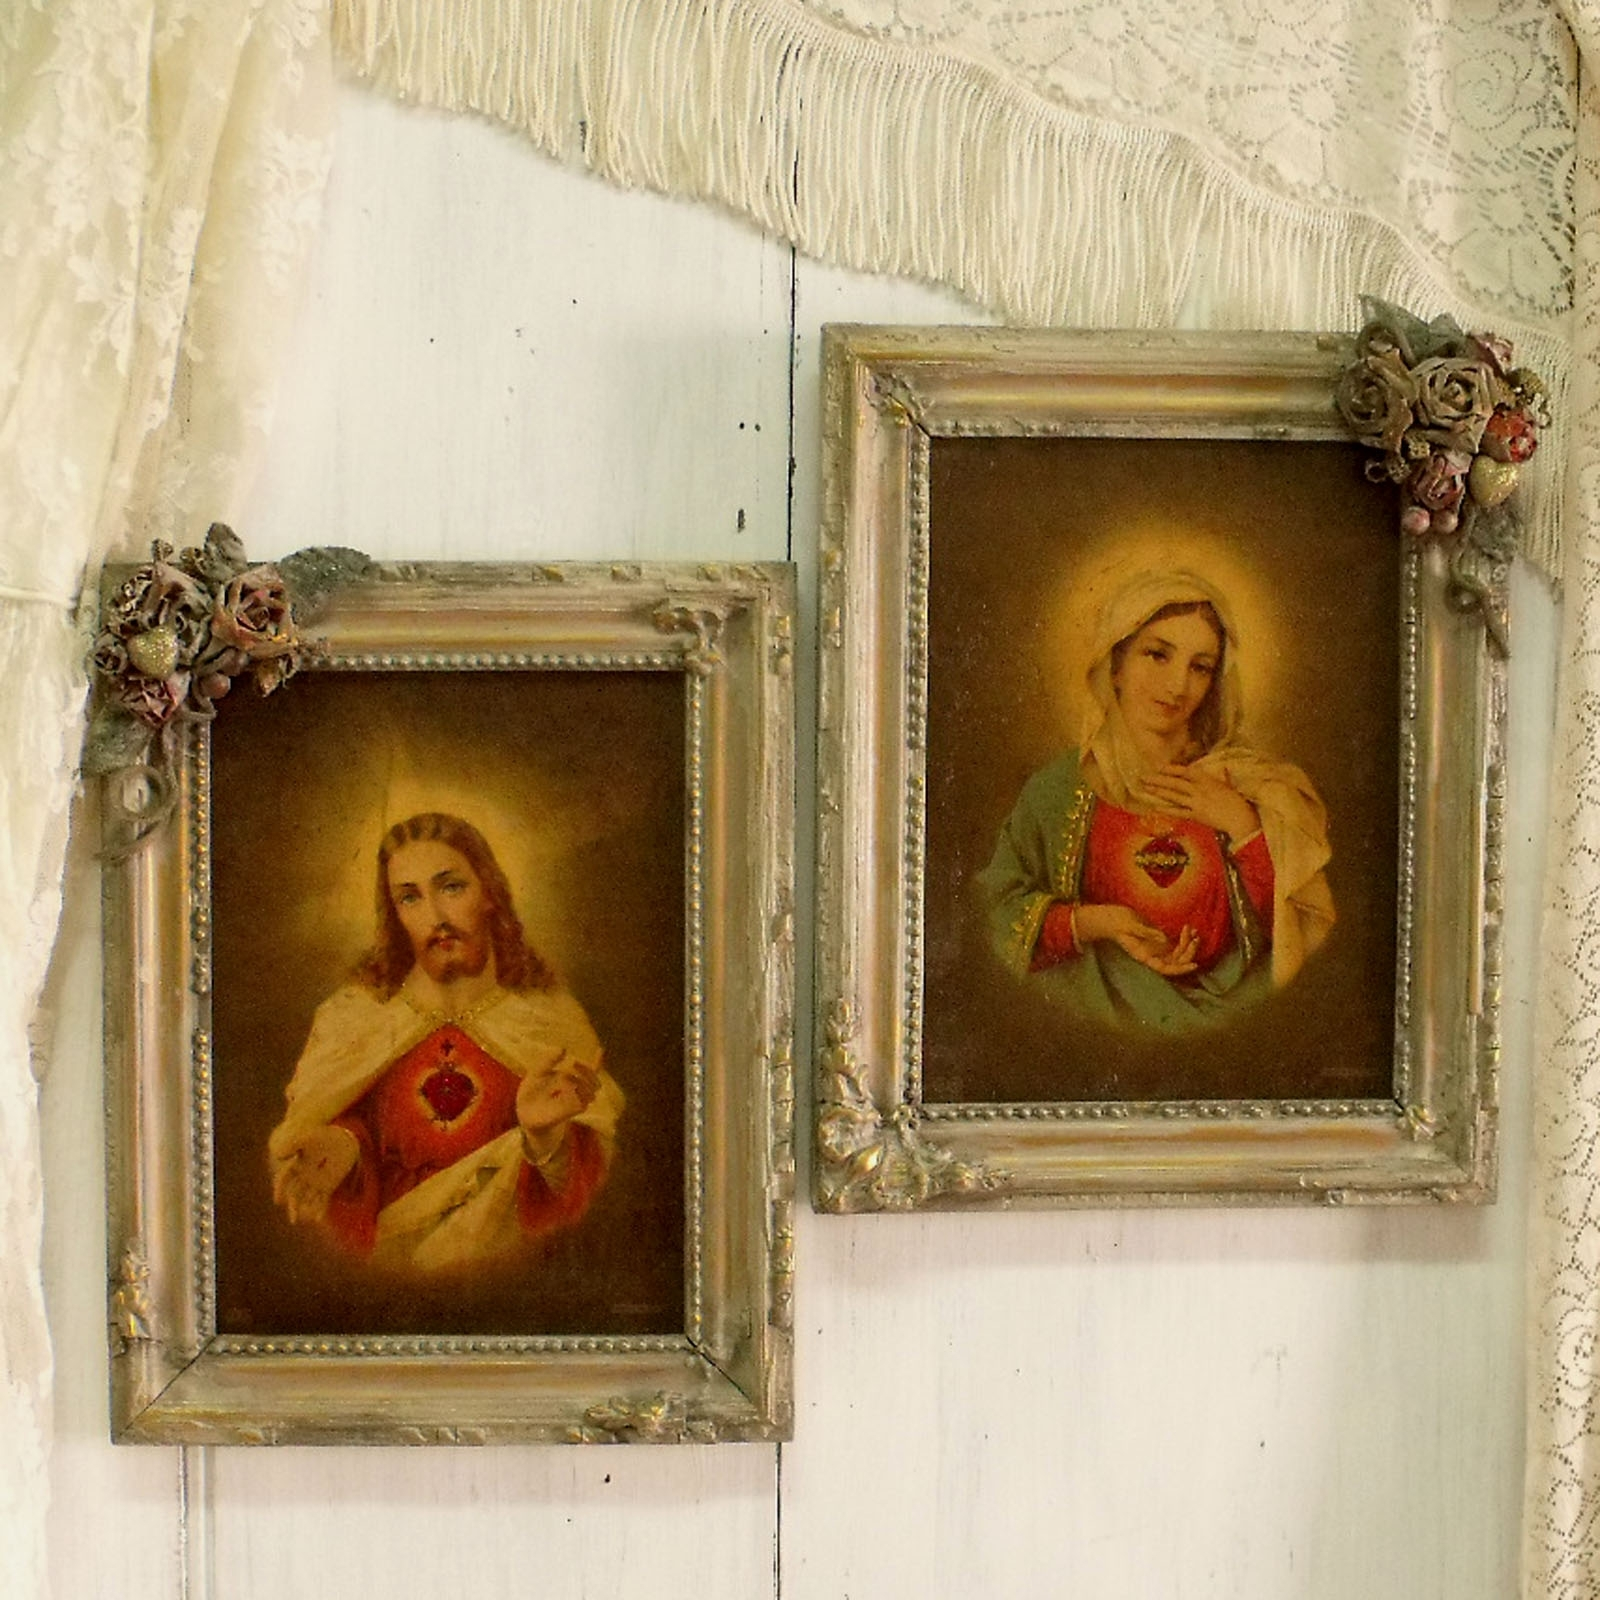 Vintage Jesus Virgin Mary Textured Prints Framed Pair | Virgin Intended For Most Up To Date Shabby Chic Framed Art Prints (View 12 of 15)